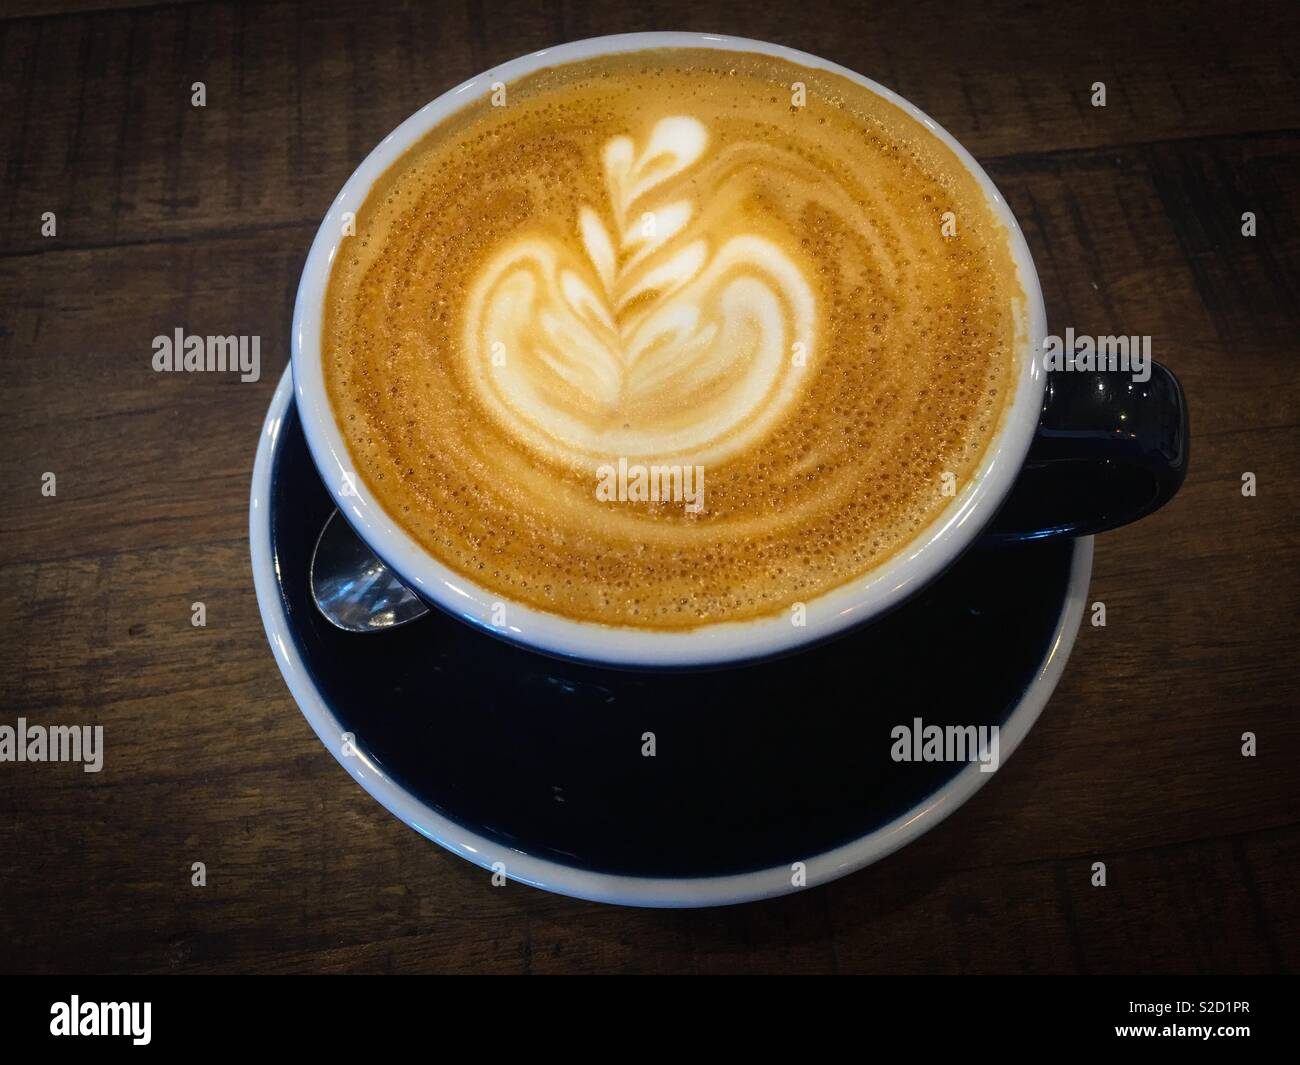 A cup of coffee latte. With a nice coffee art . For the best flavour and taste use freshly brewed coffee and full cream milk - Stock Image